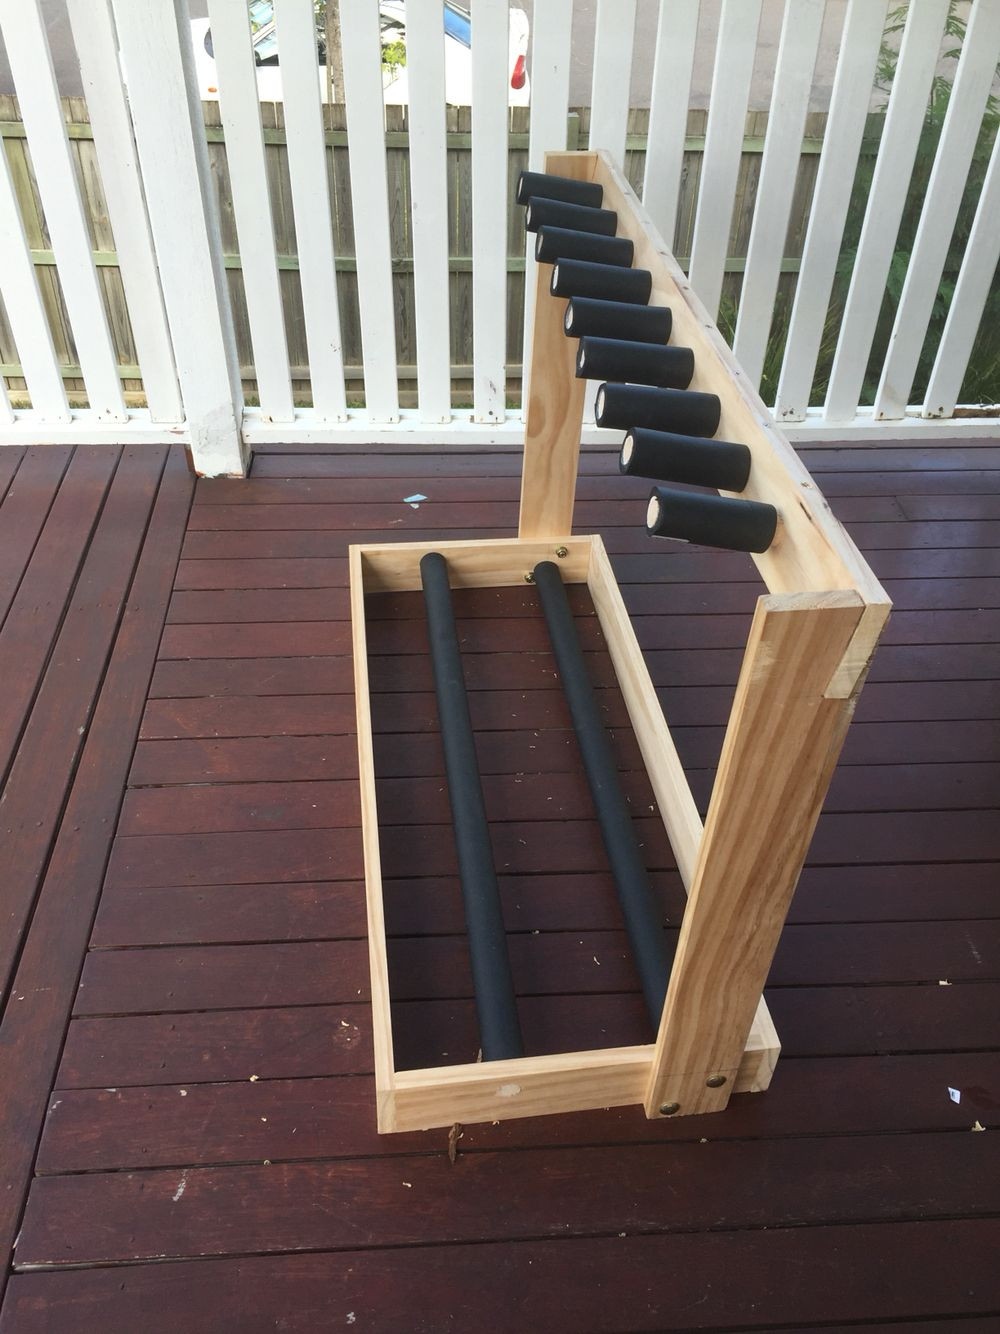 Best ideas about DIY Storage Rack . Save or Pin My recent DIY guitar rack build $20 in bits from the Now.